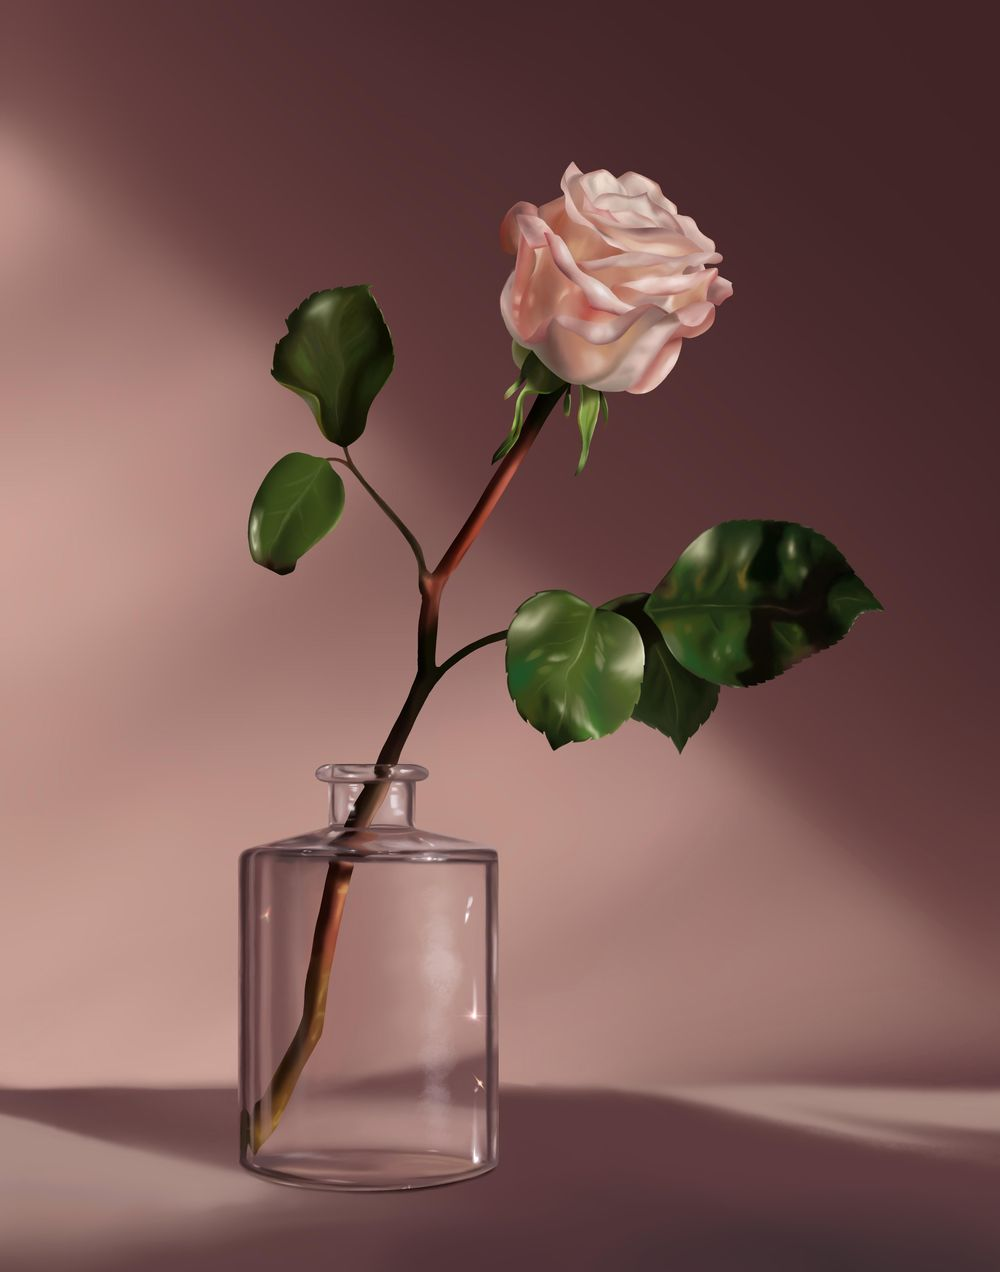 Rose - image 1 - student project